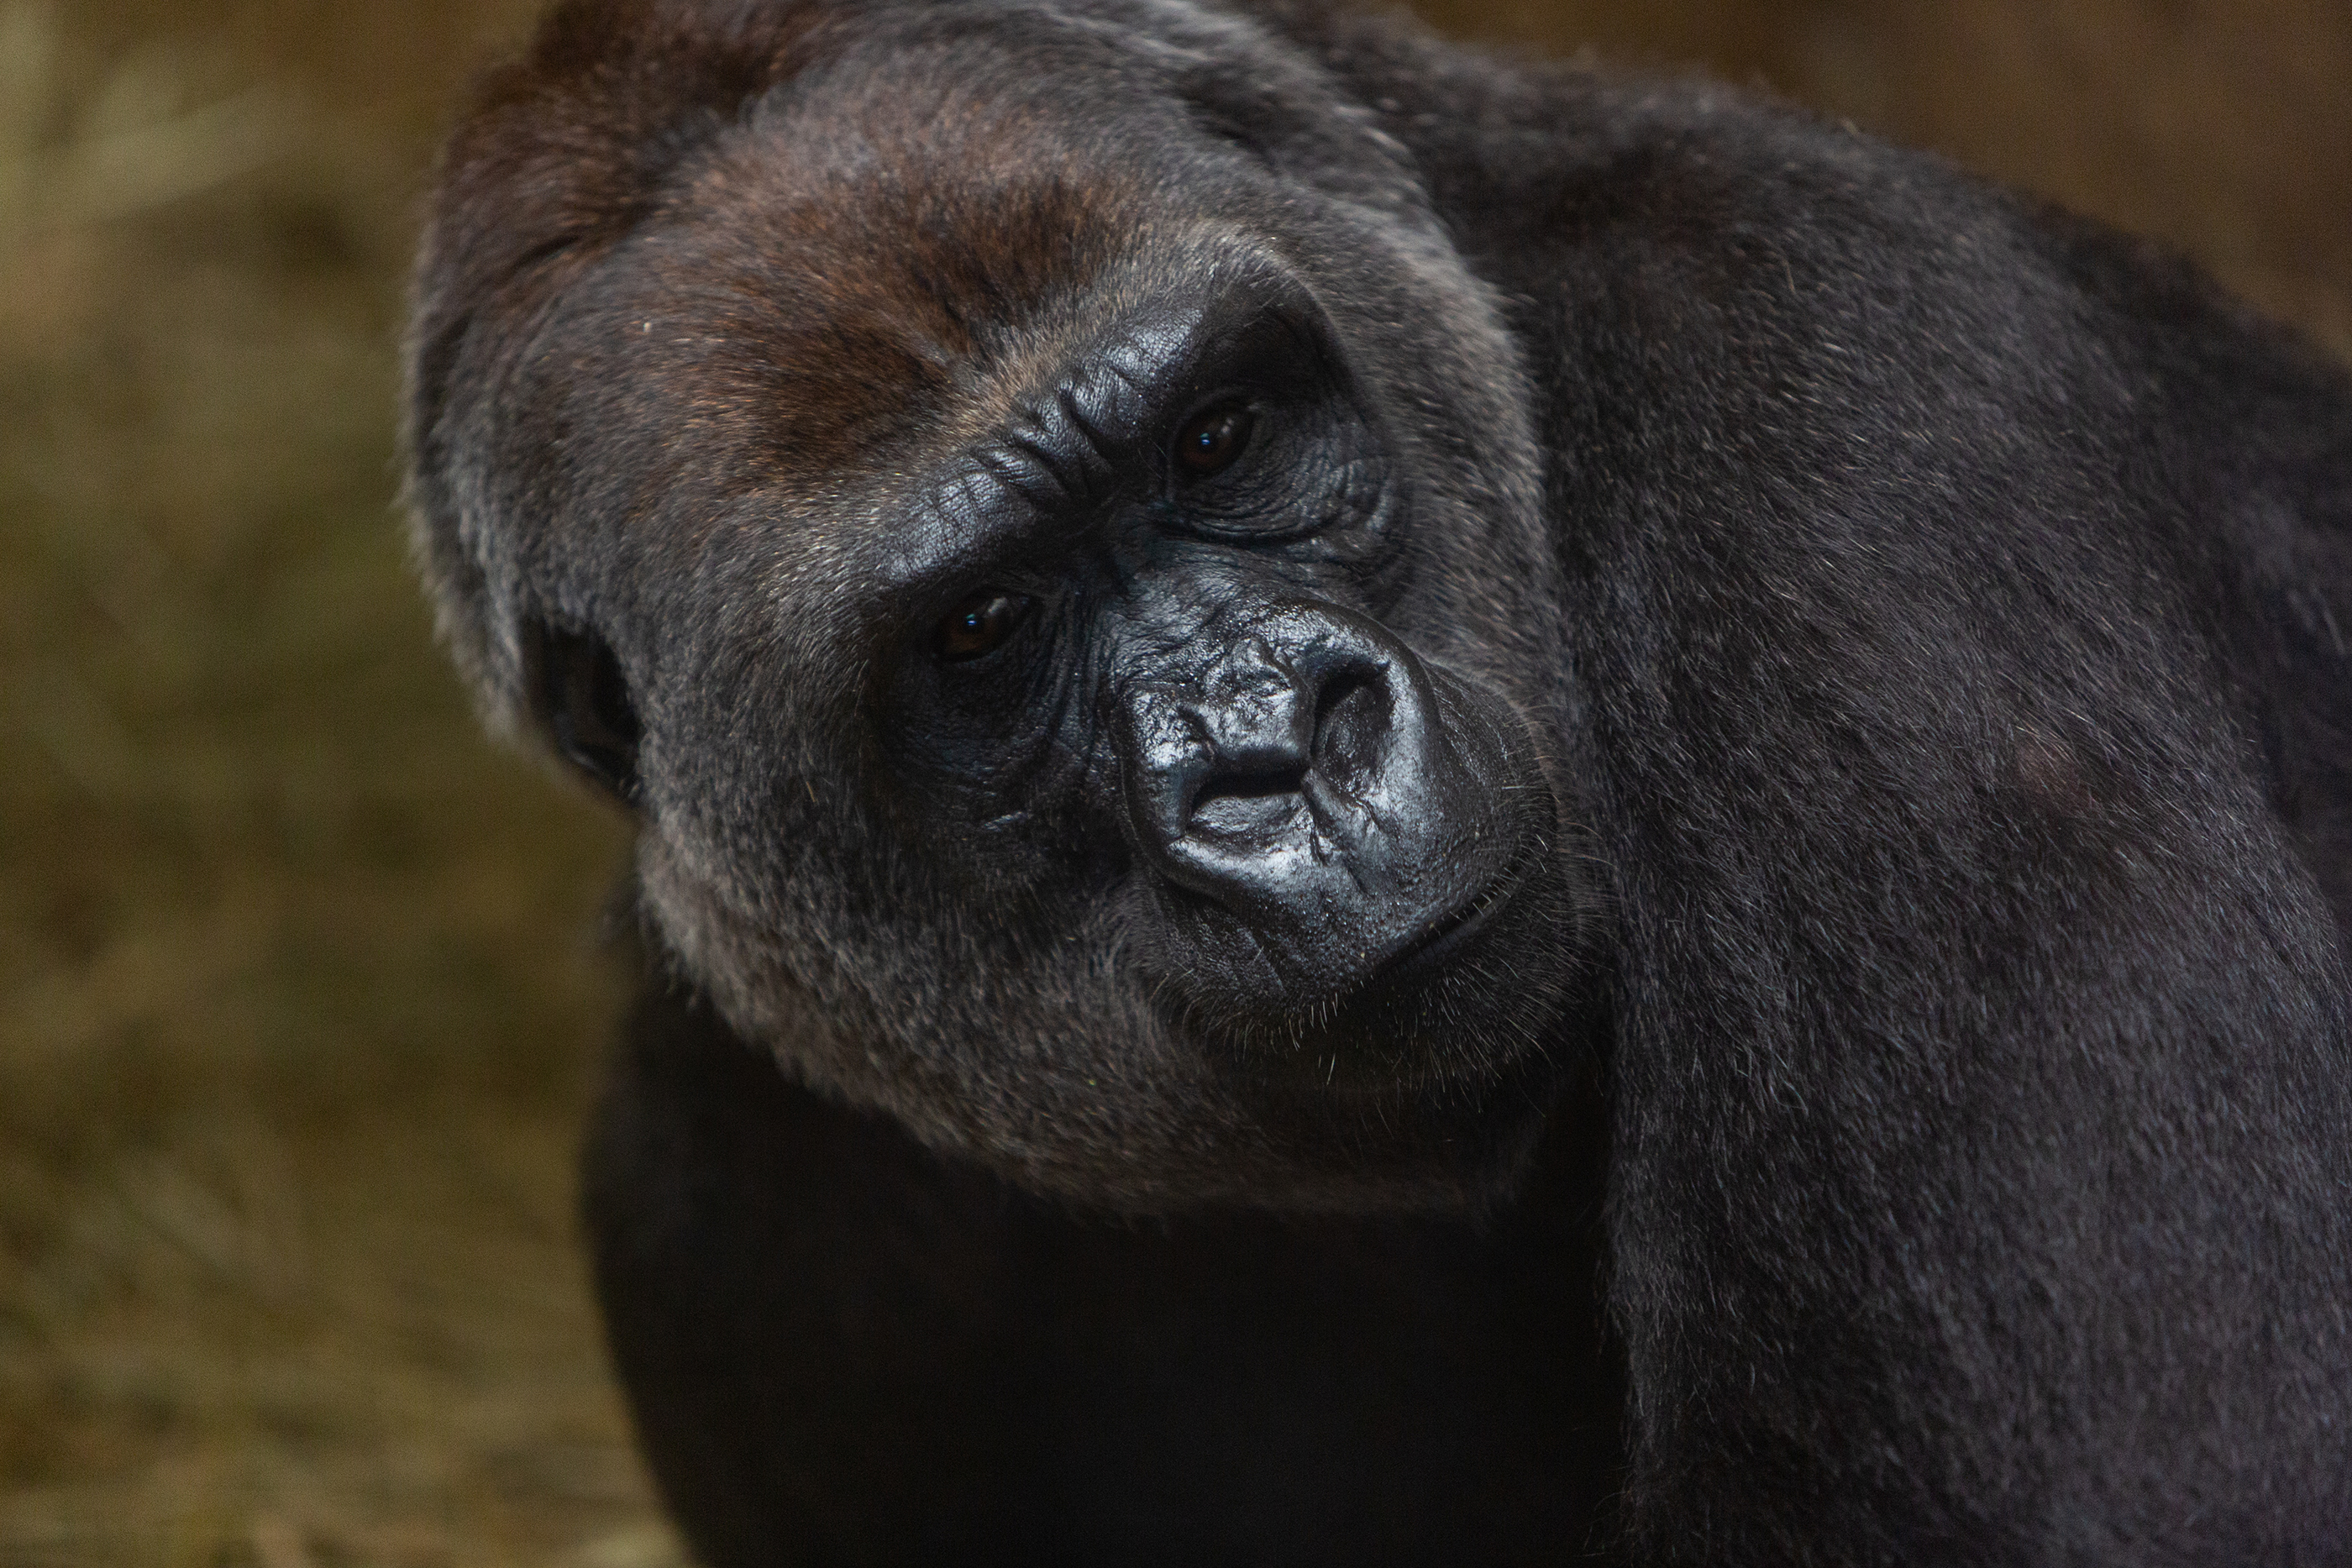 Animal Came In Her Mouth Porn western lowland gorilla born at the smithsonian's national